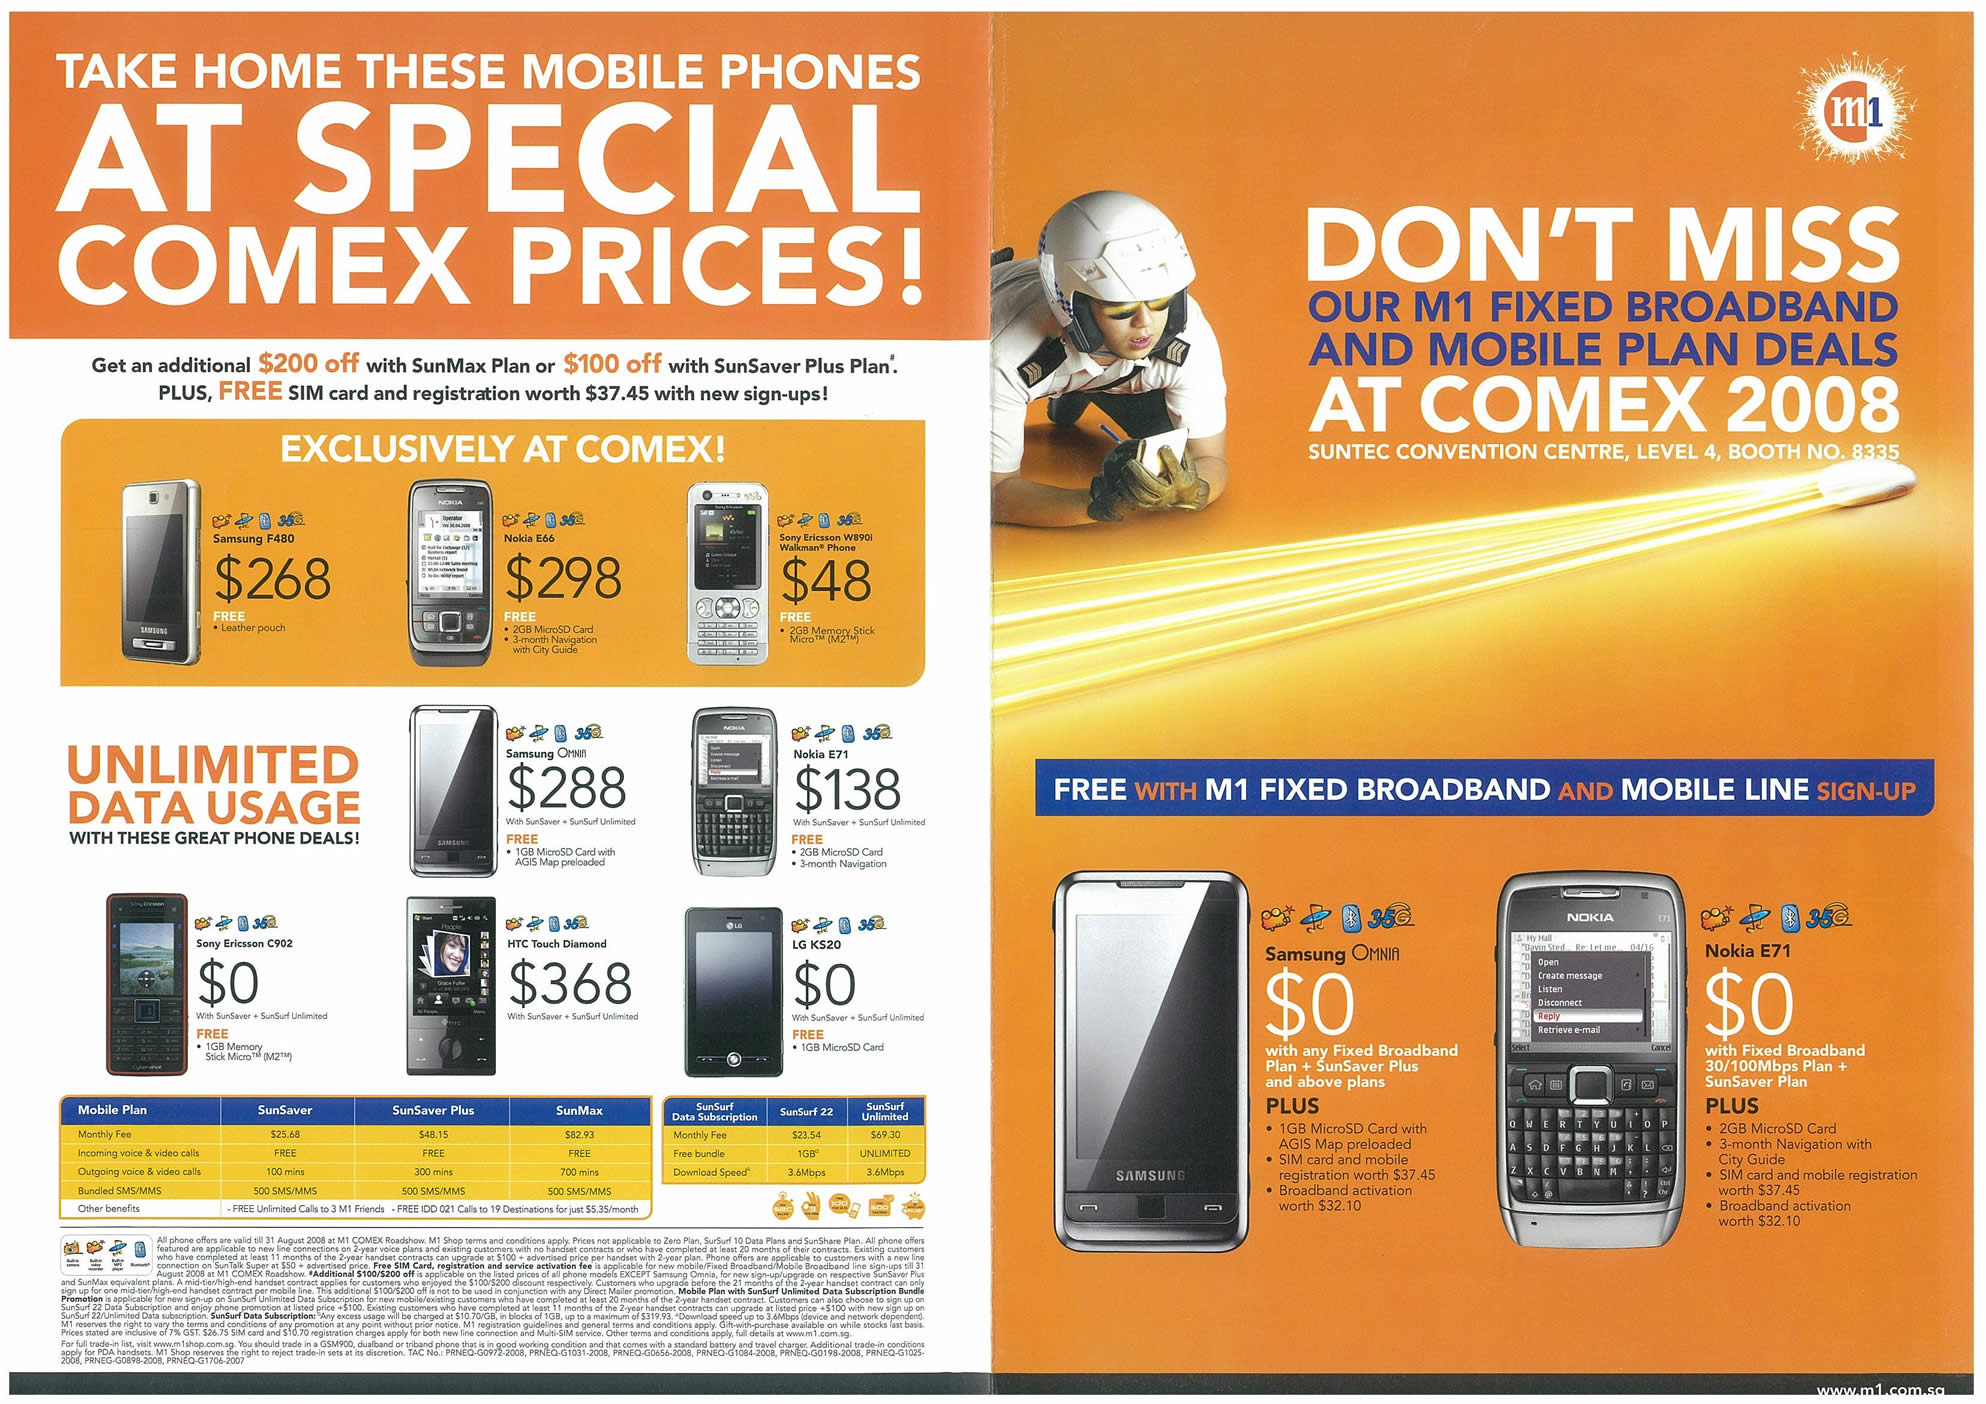 Comex 2008 price list image brochure of M1 Page 1